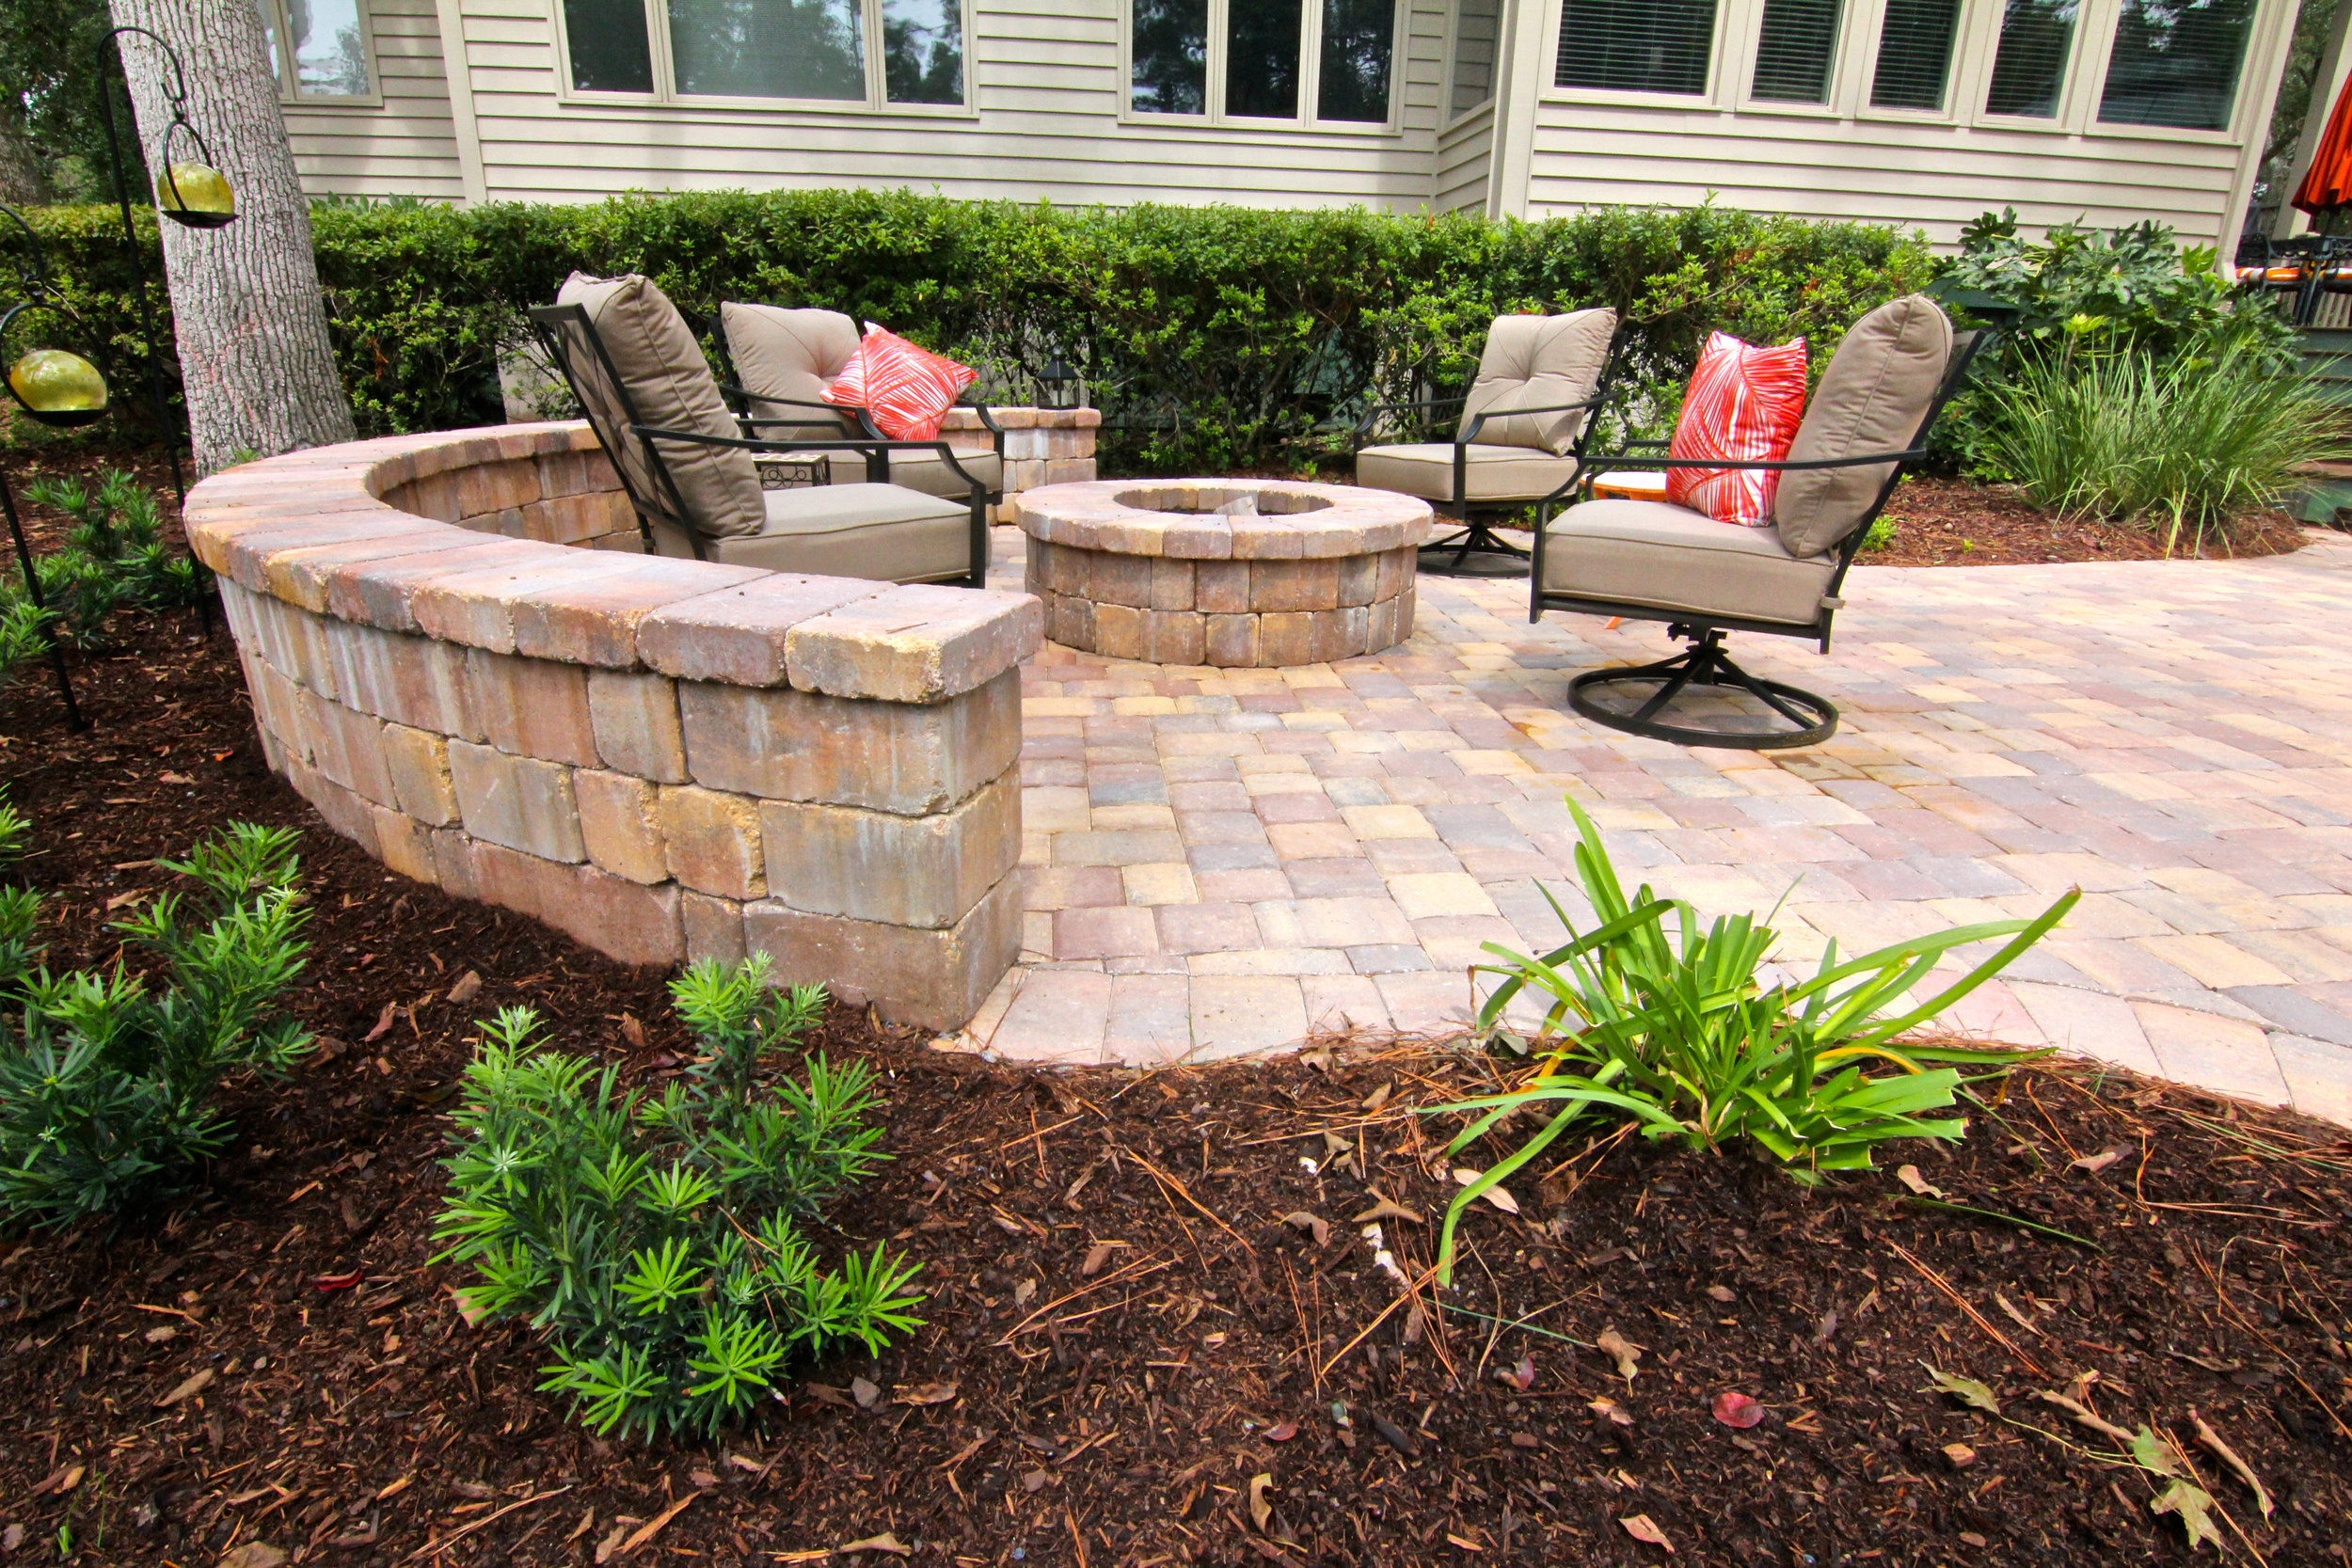 Tremron, Autumn Blend Paver Patio Design